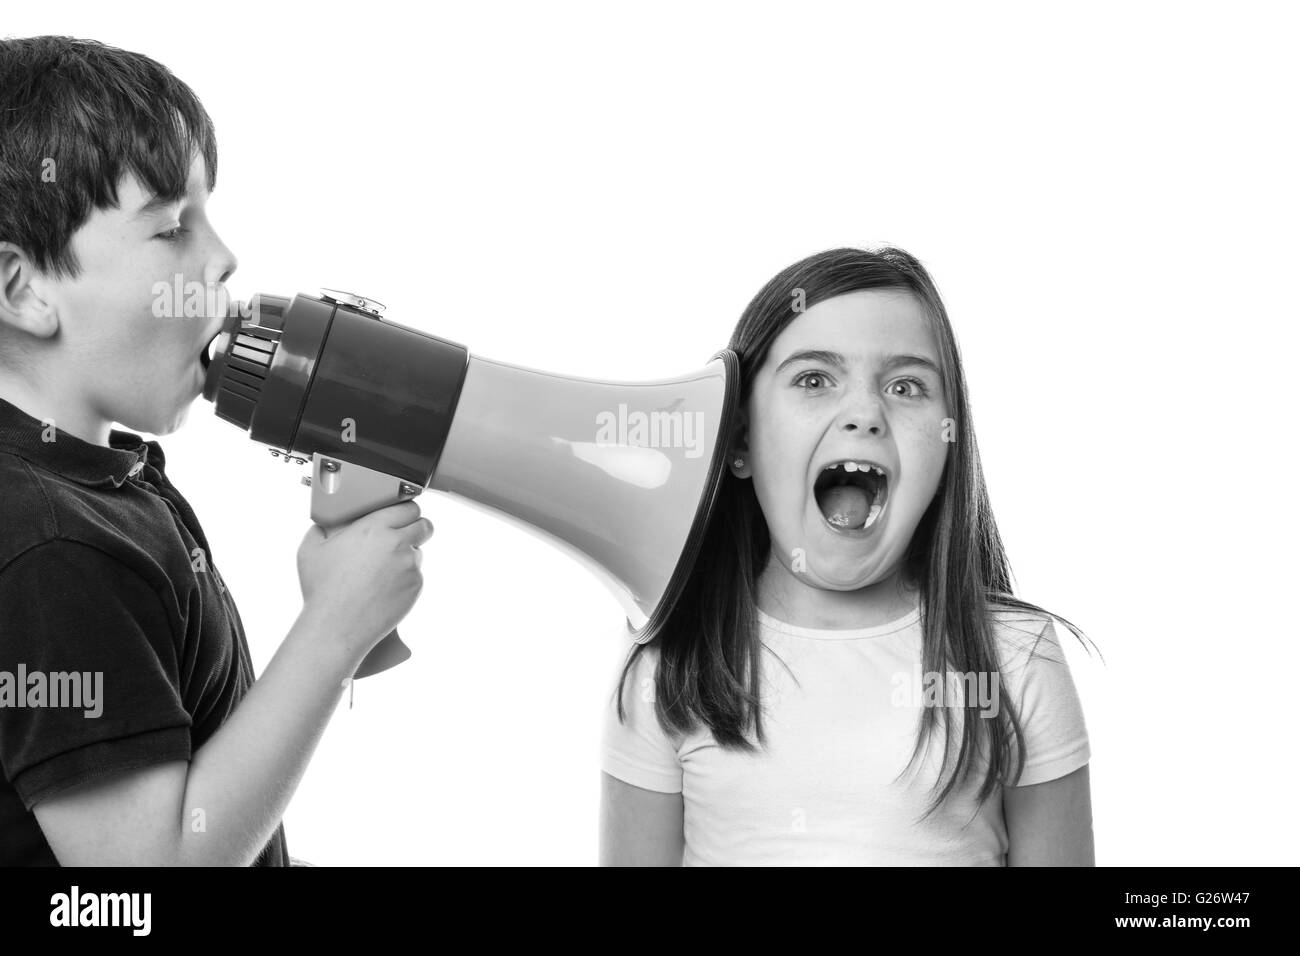 young boy using s megaphone to speak to his friend - Stock Image